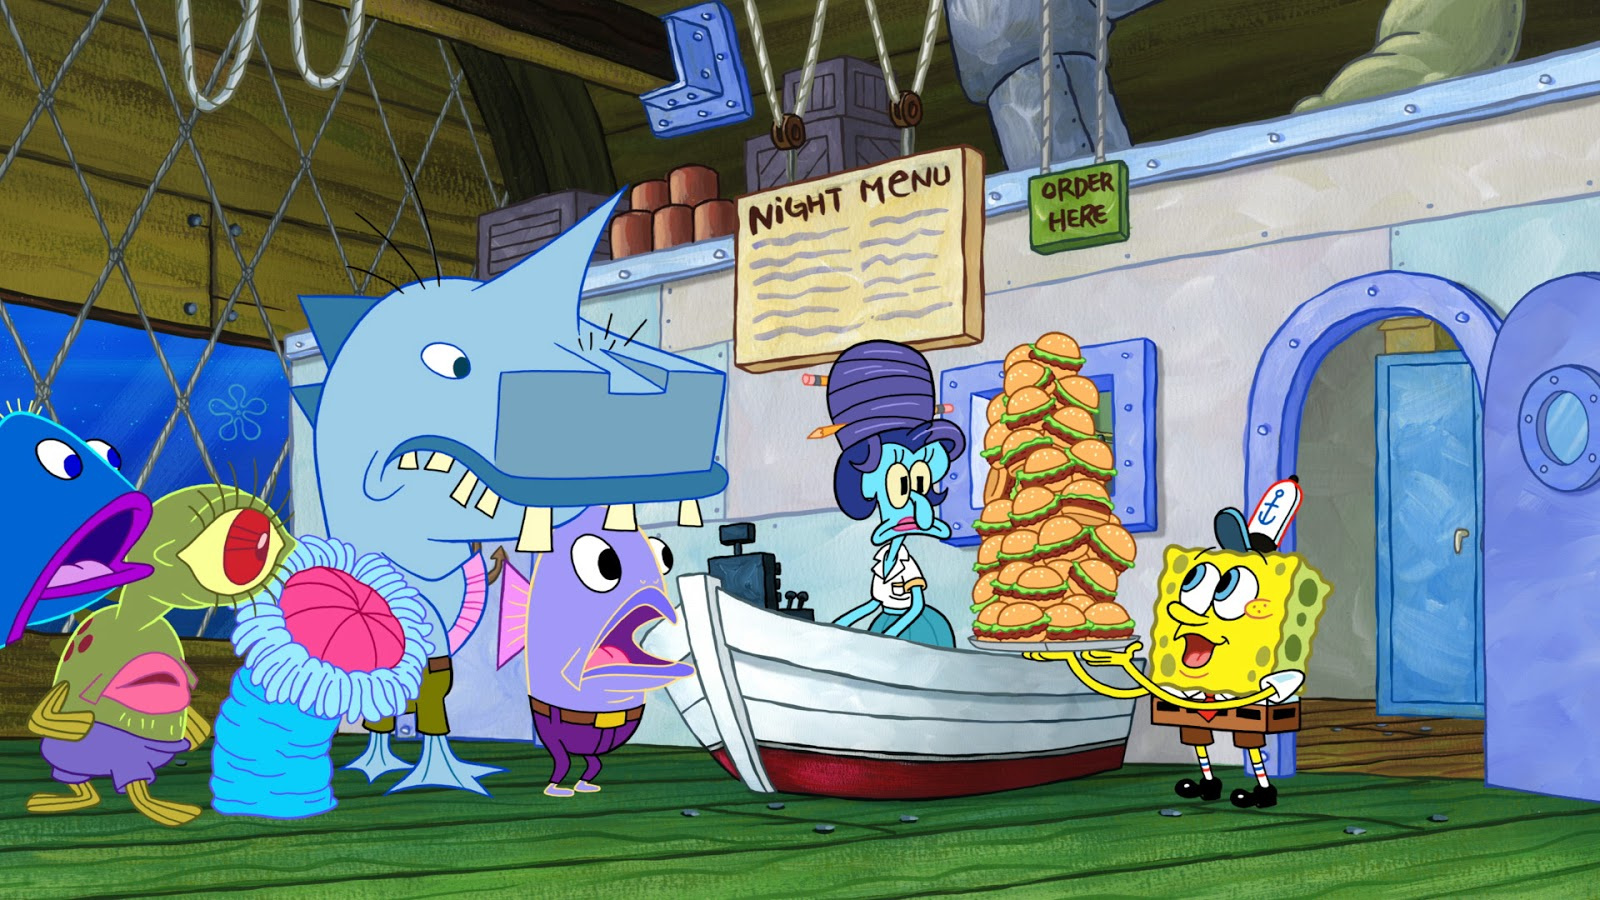 nickalive!: nickelodeon usa to premiere new episodes of 'spongebob